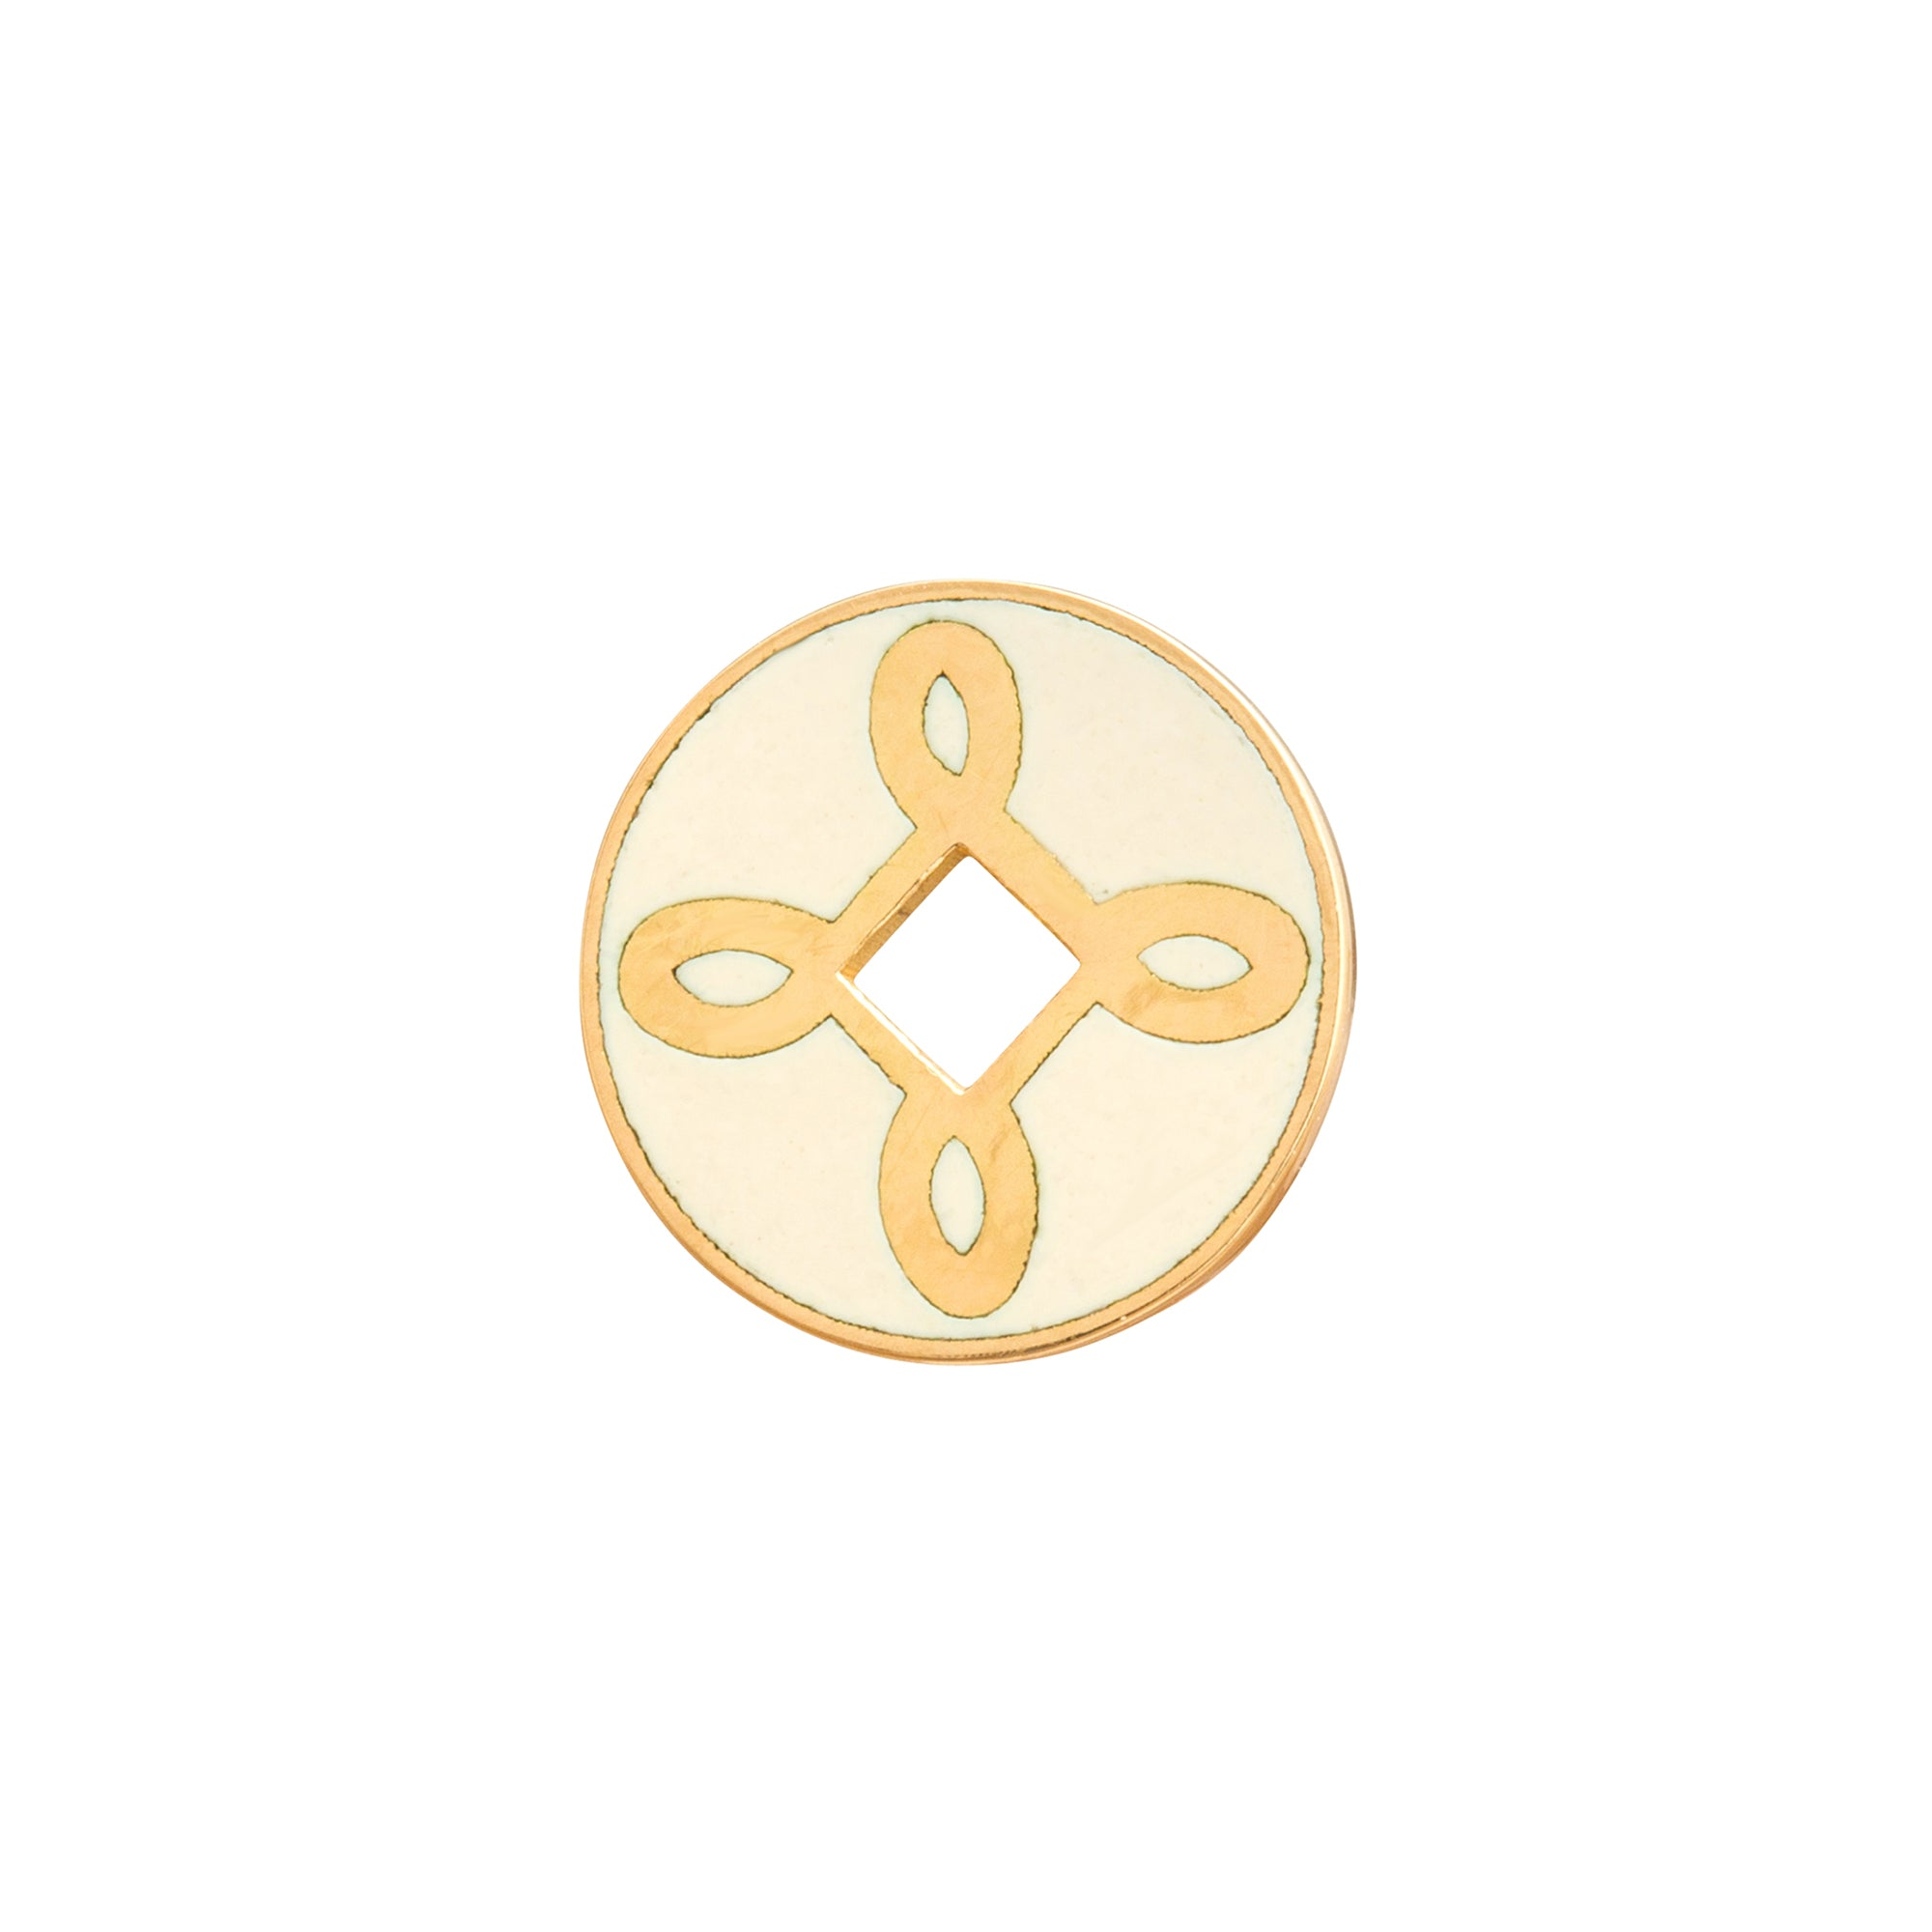 True Lovers Knot Disk by Foundrae for Broken English Jewelry